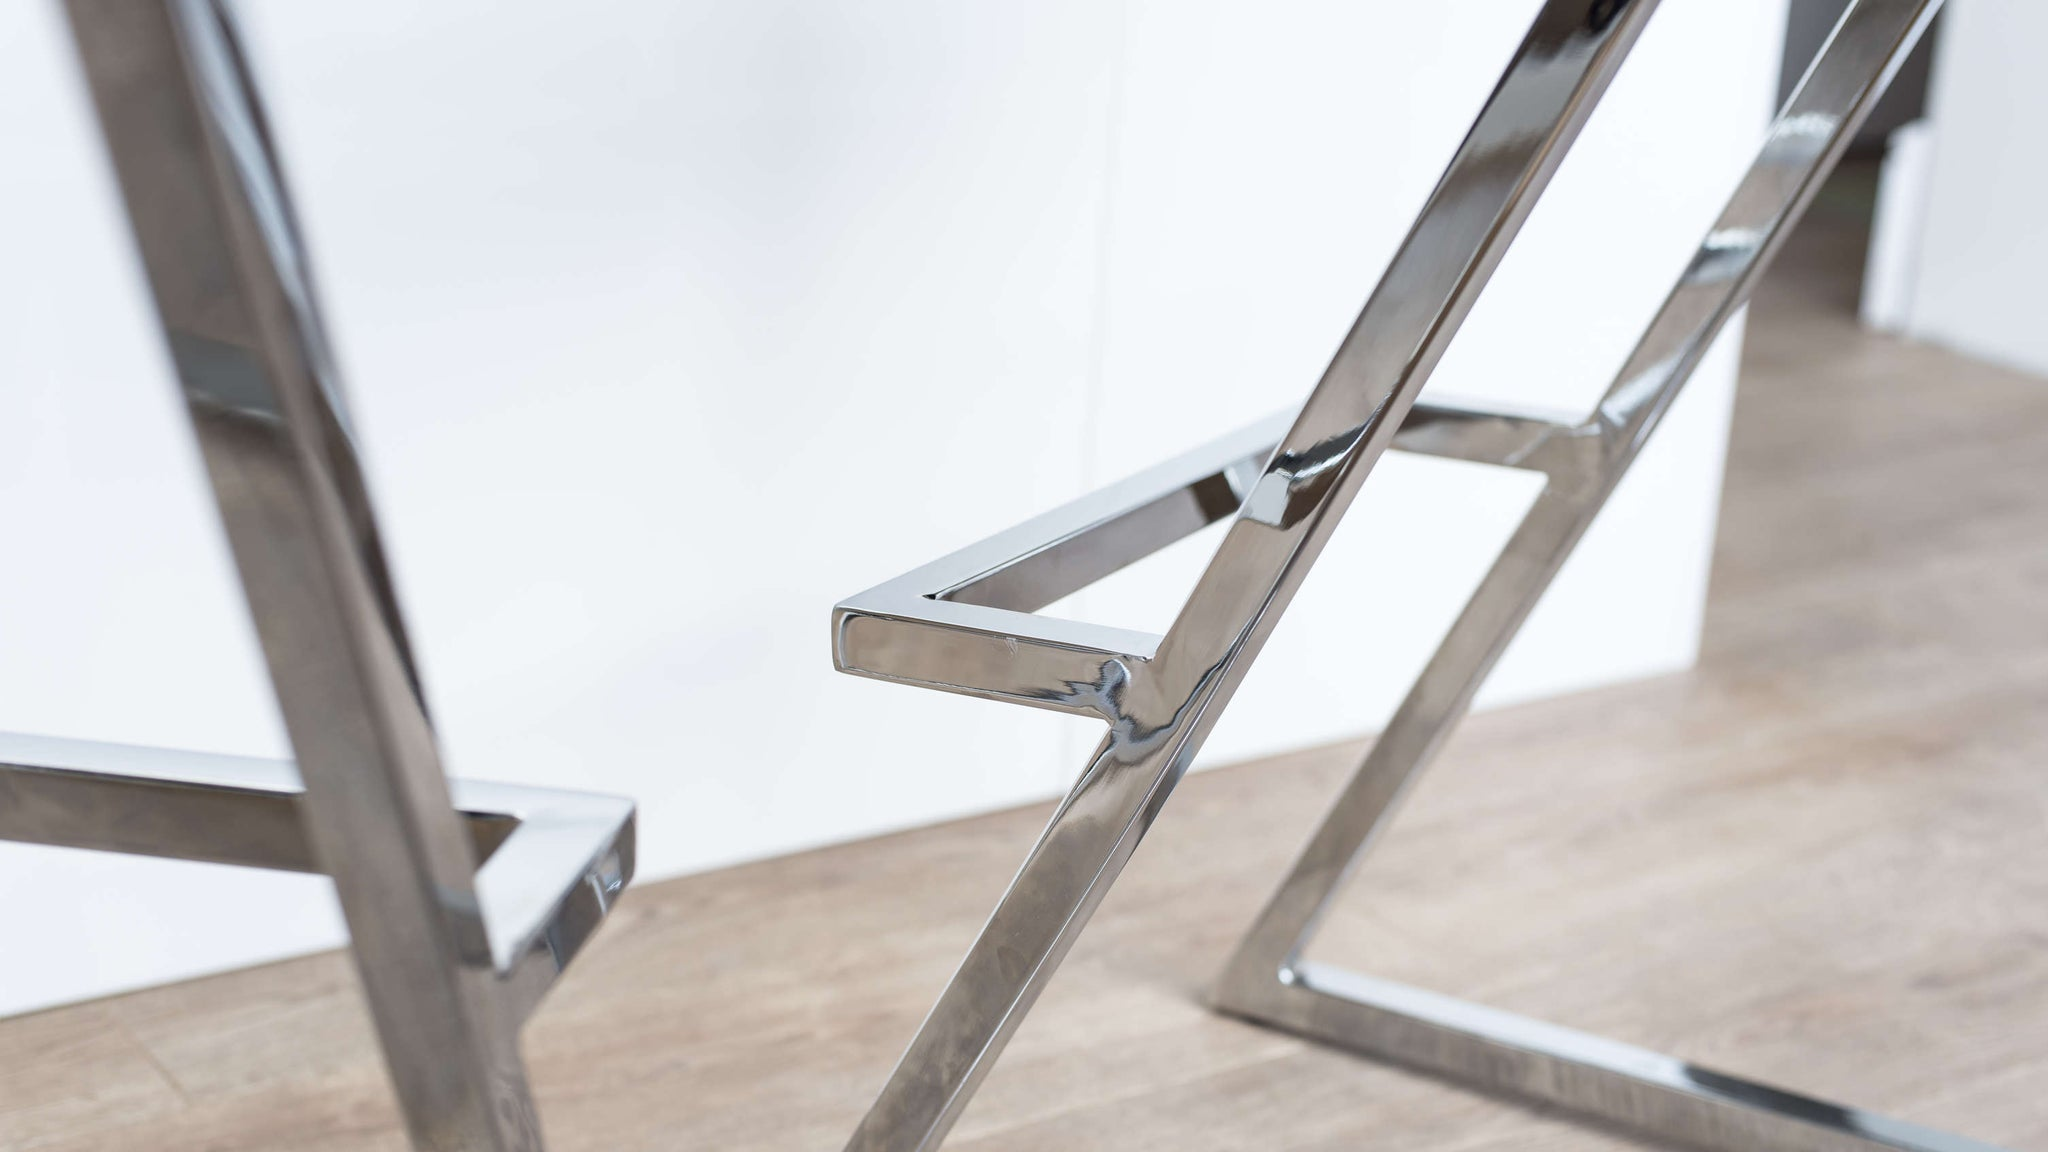 Stylish Chrome Bar Stool with Foot Rest